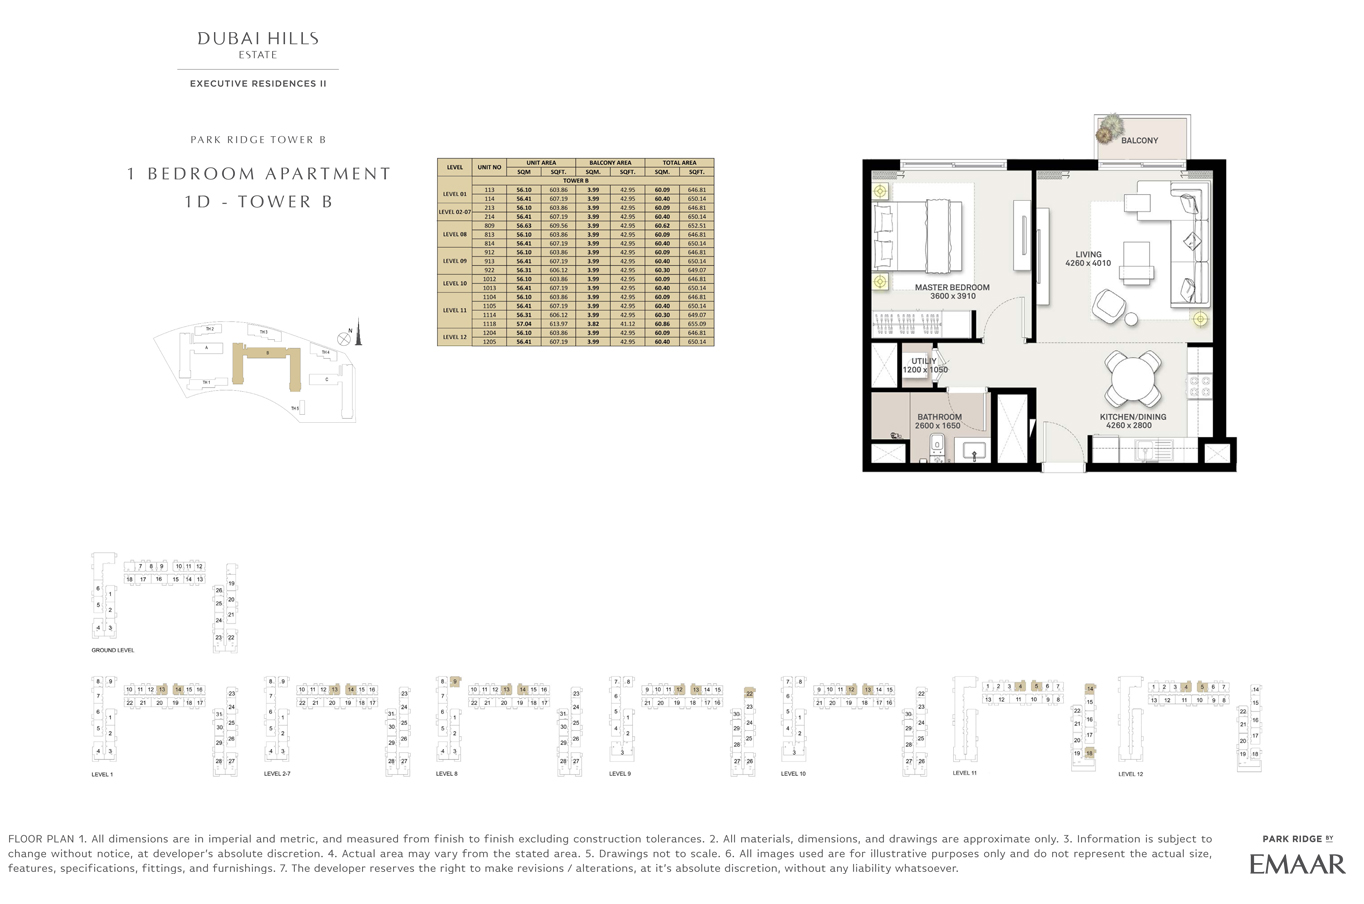 1 Bedroom Type 1D, Tower B, Size 646.81 Sq Ft